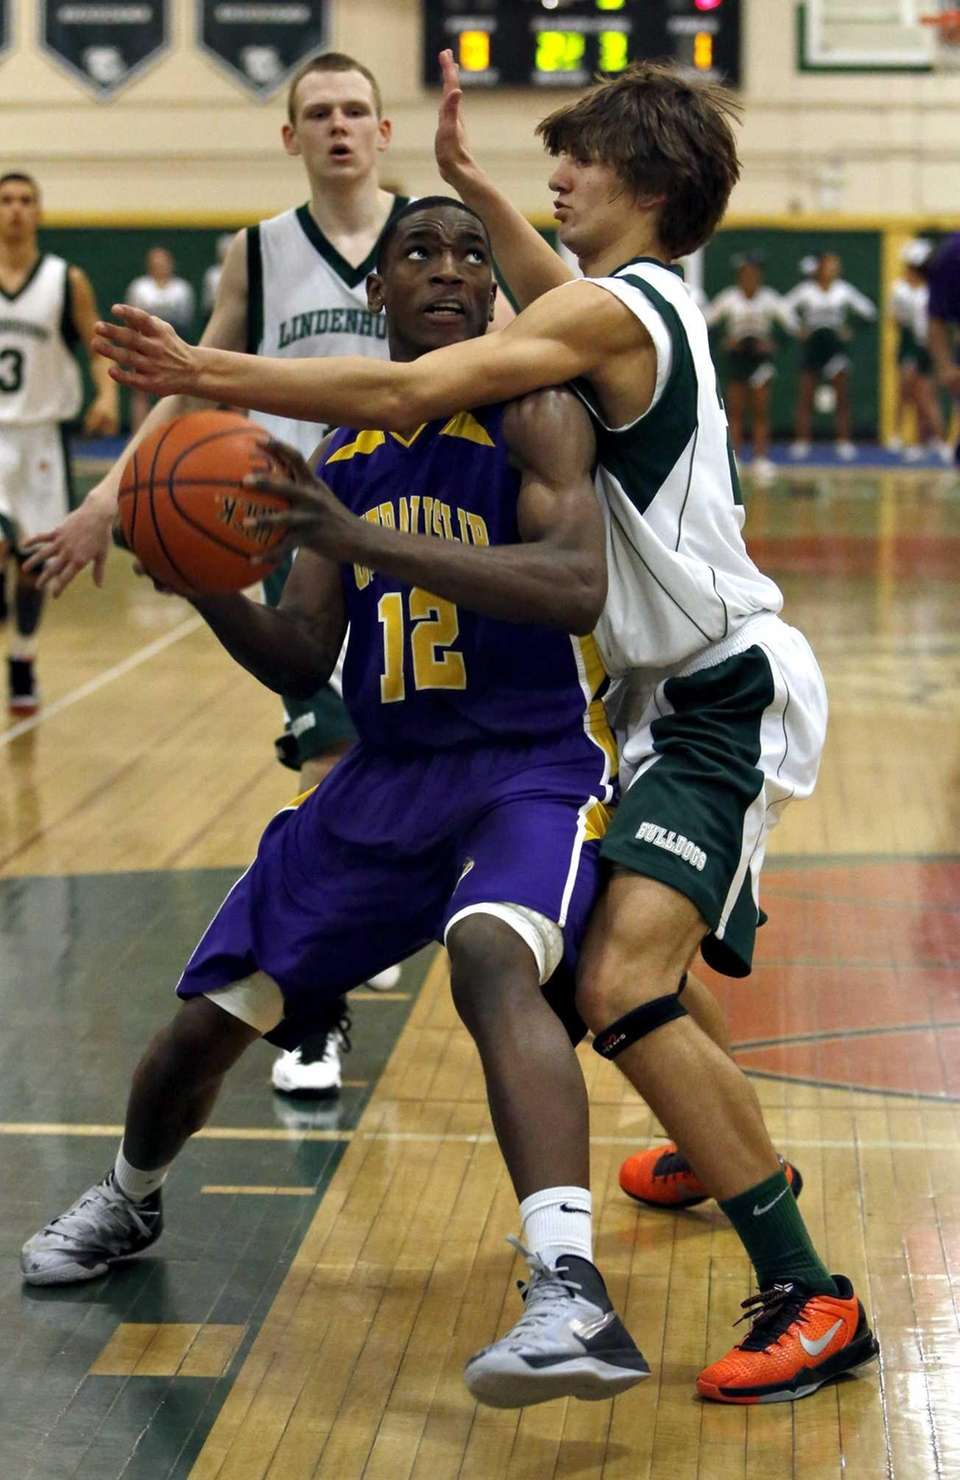 Central Islip's Tm McKenzie is fouled in the